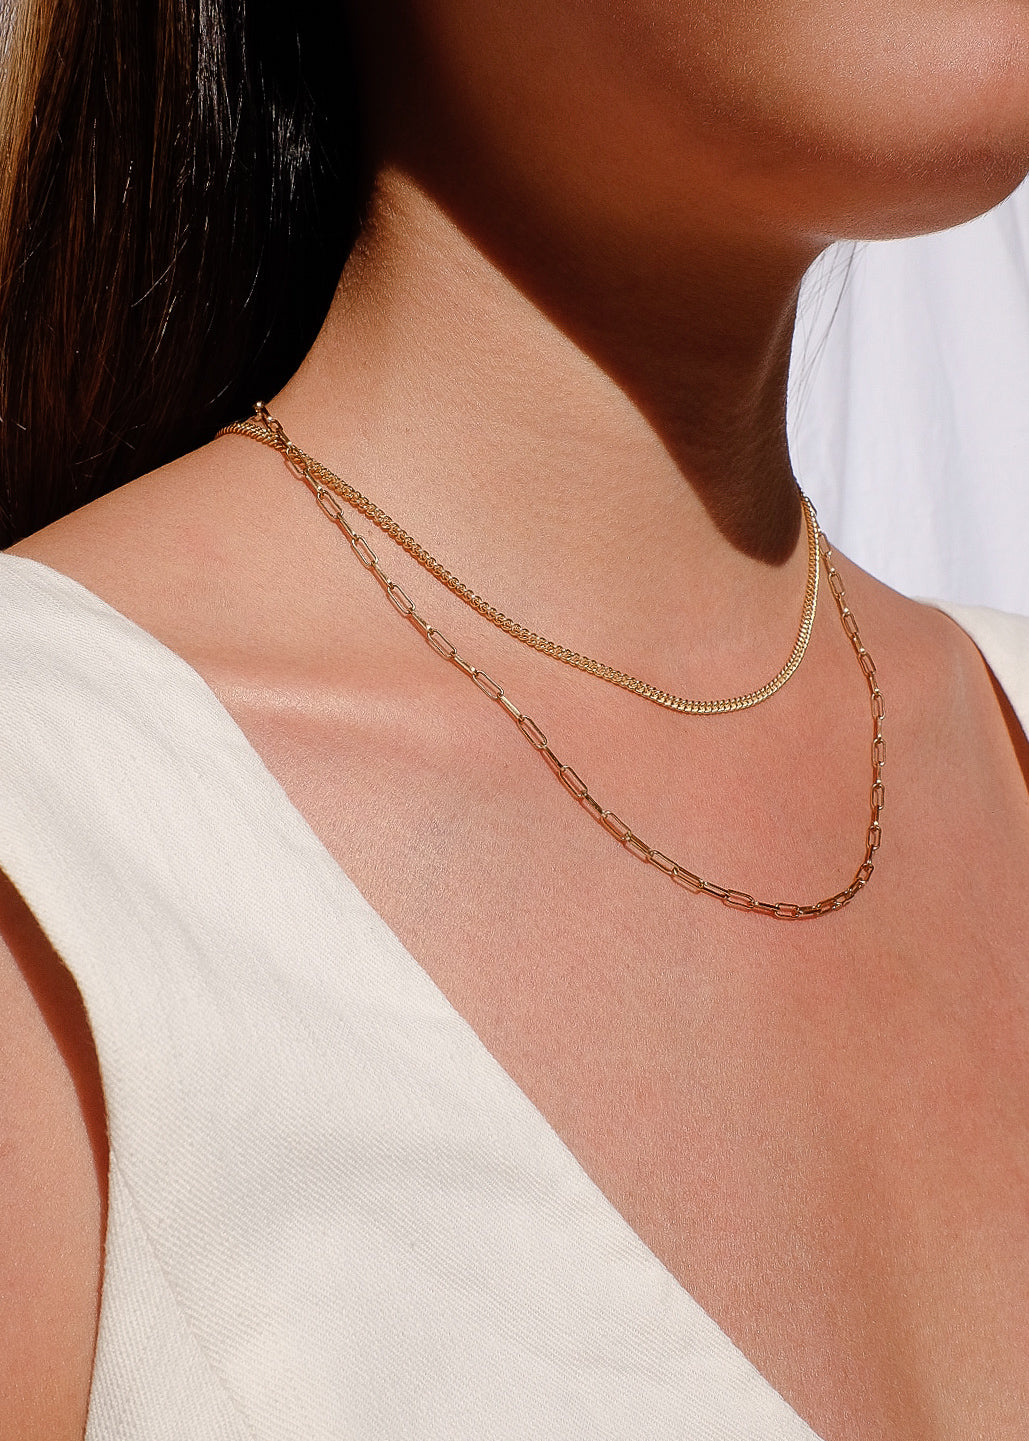 Rectangle Chain Necklace in Gold